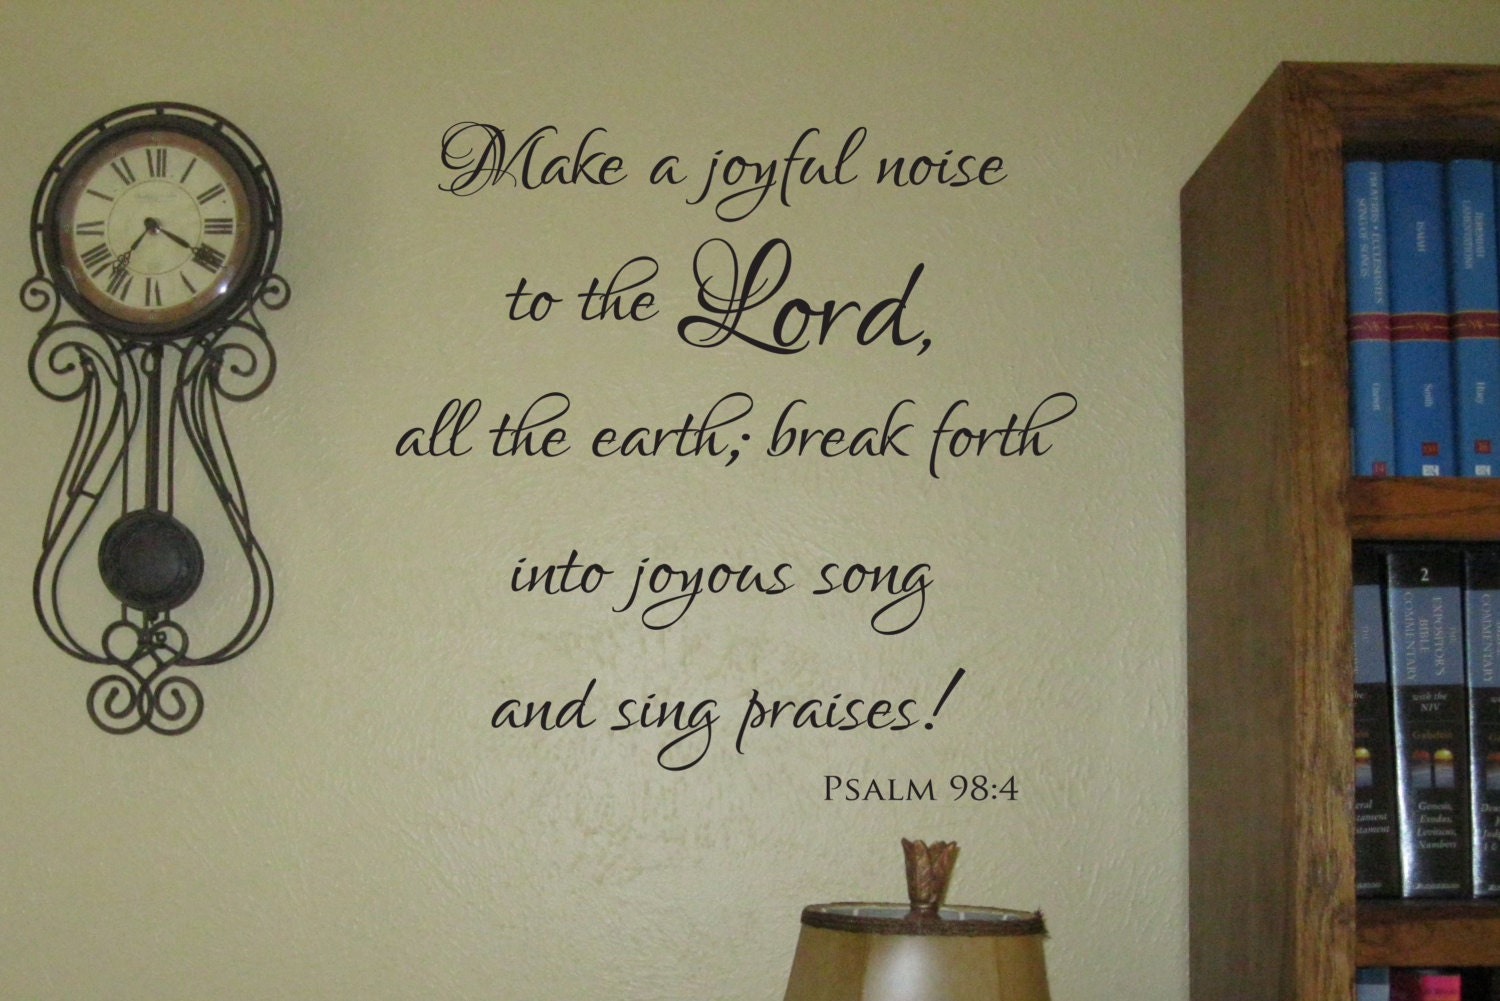 Vinyl Decal of Make a joyful noise to the Lord all the